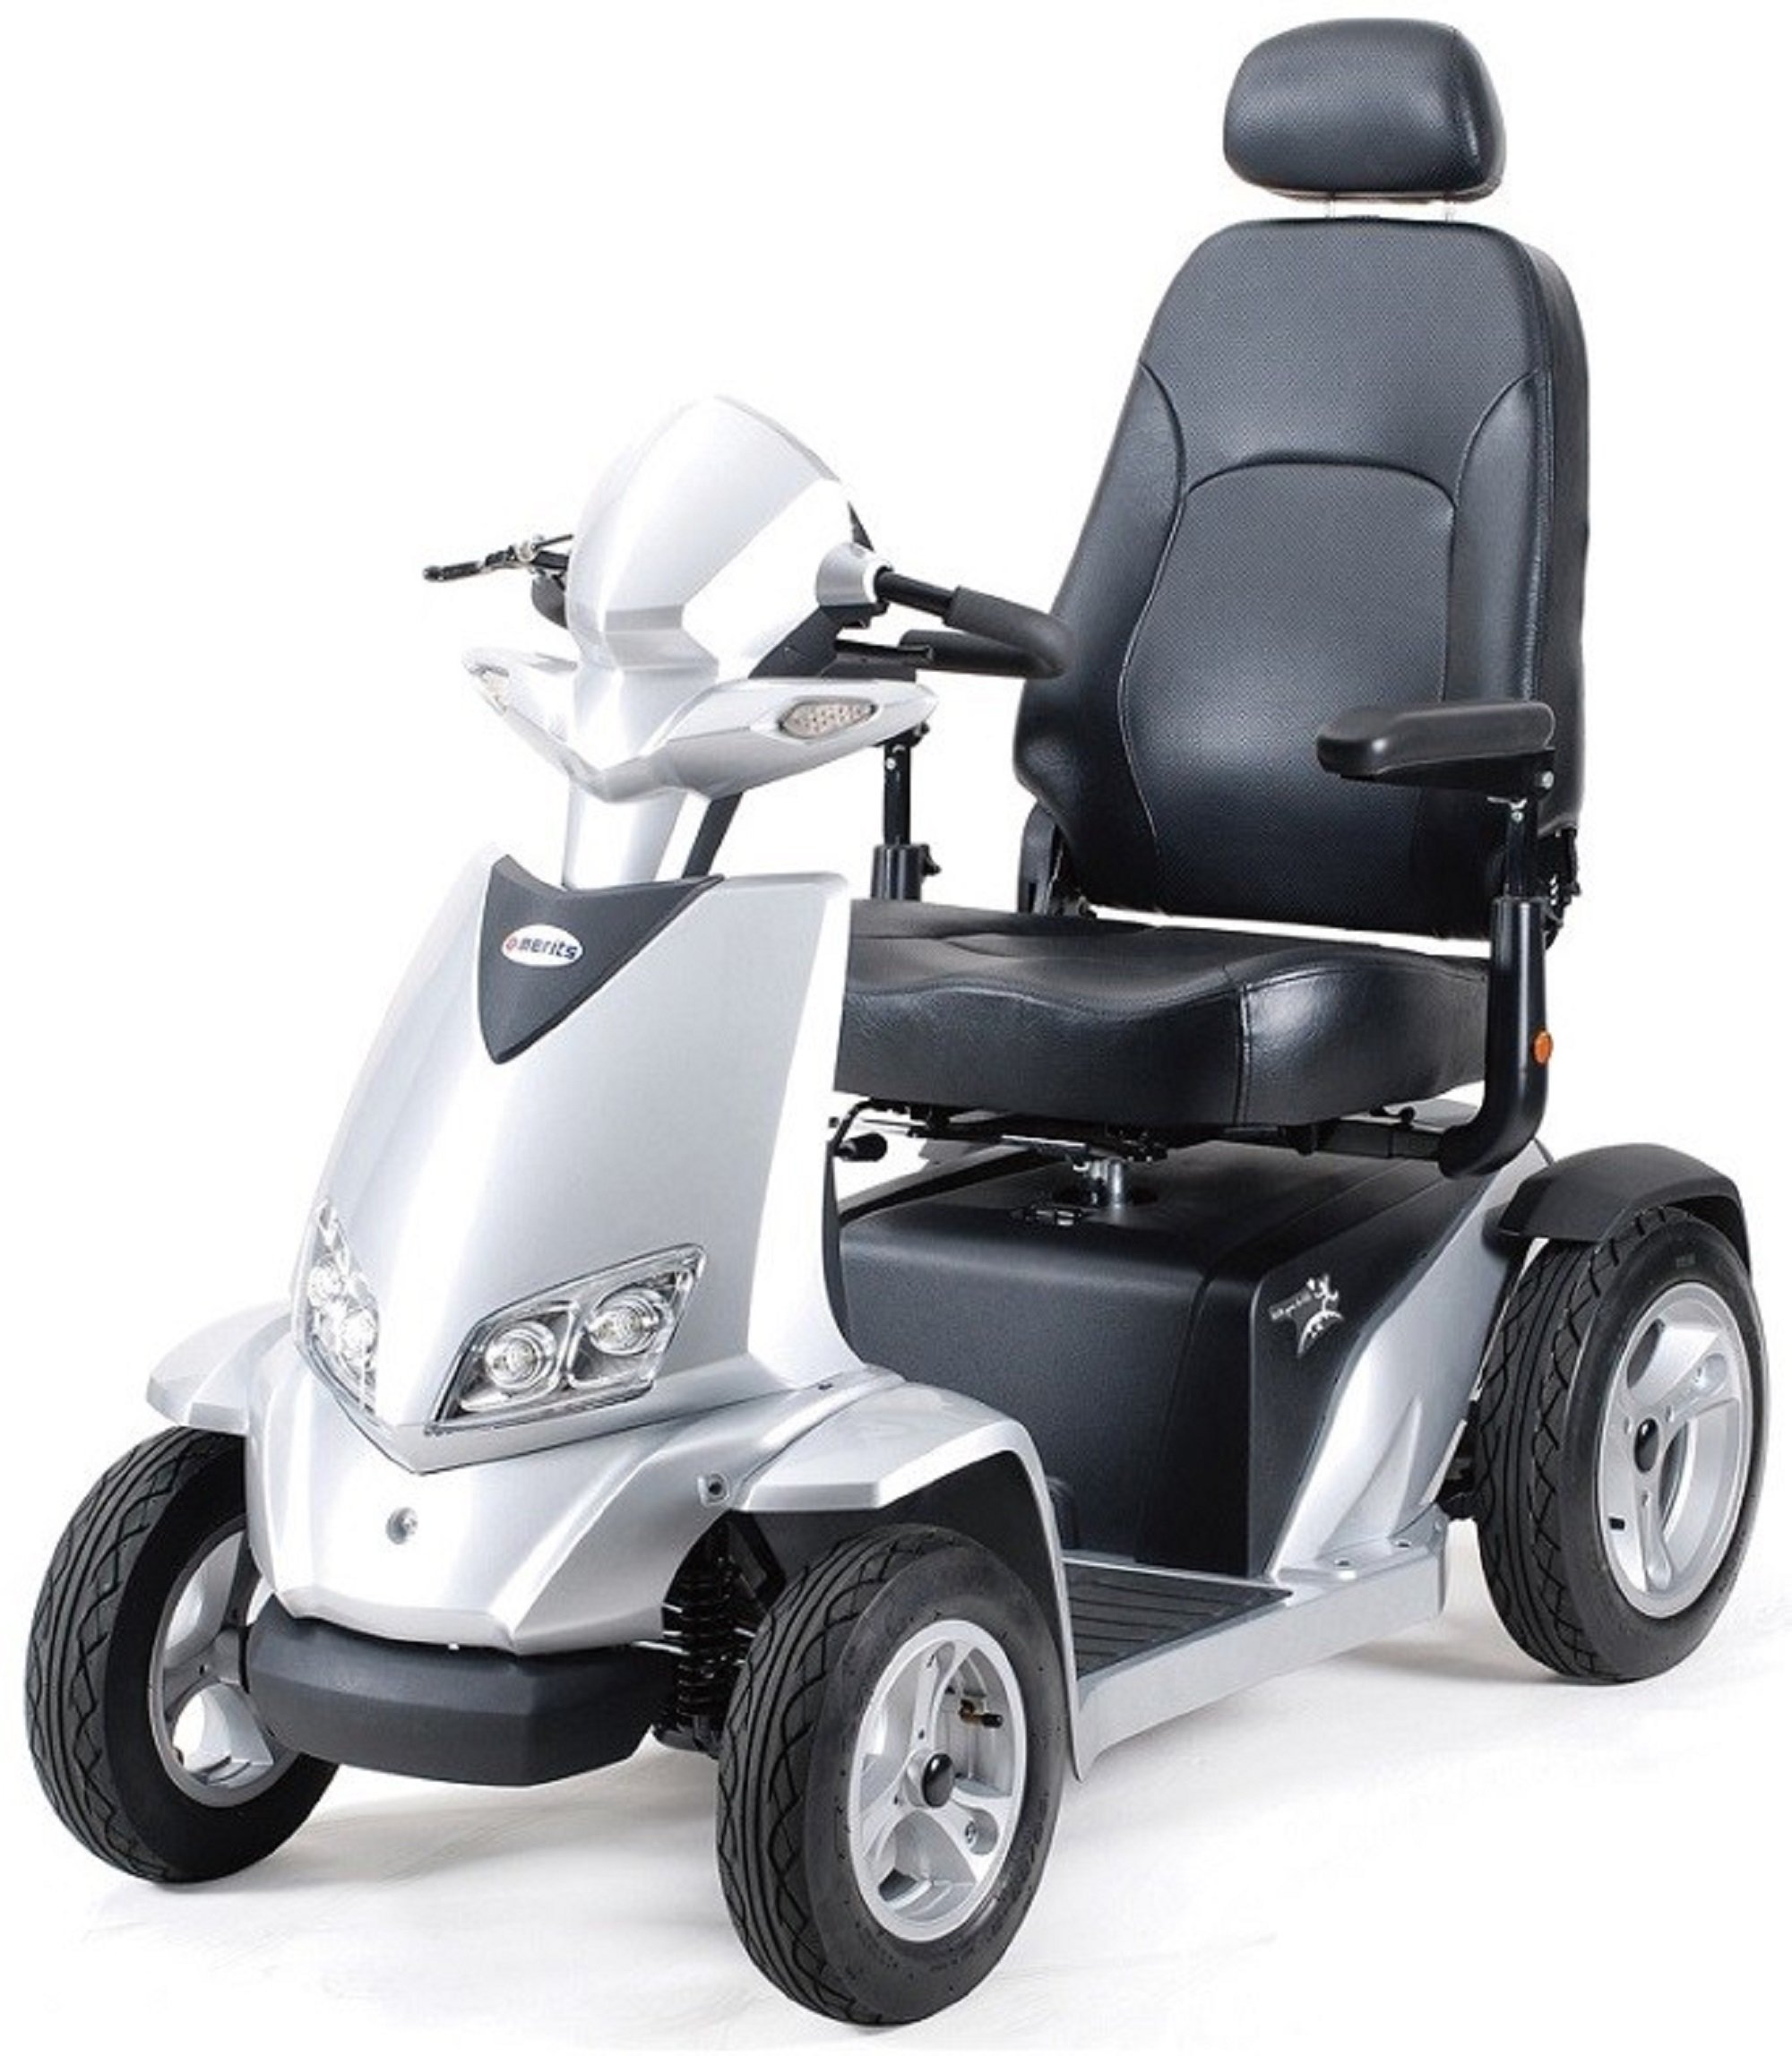 Merits Health Products - Silverado Extreme - 4-Wheel Full Suspension Electric Scooter - 20''W x 18''D - Silver by Silverado (Image #1)